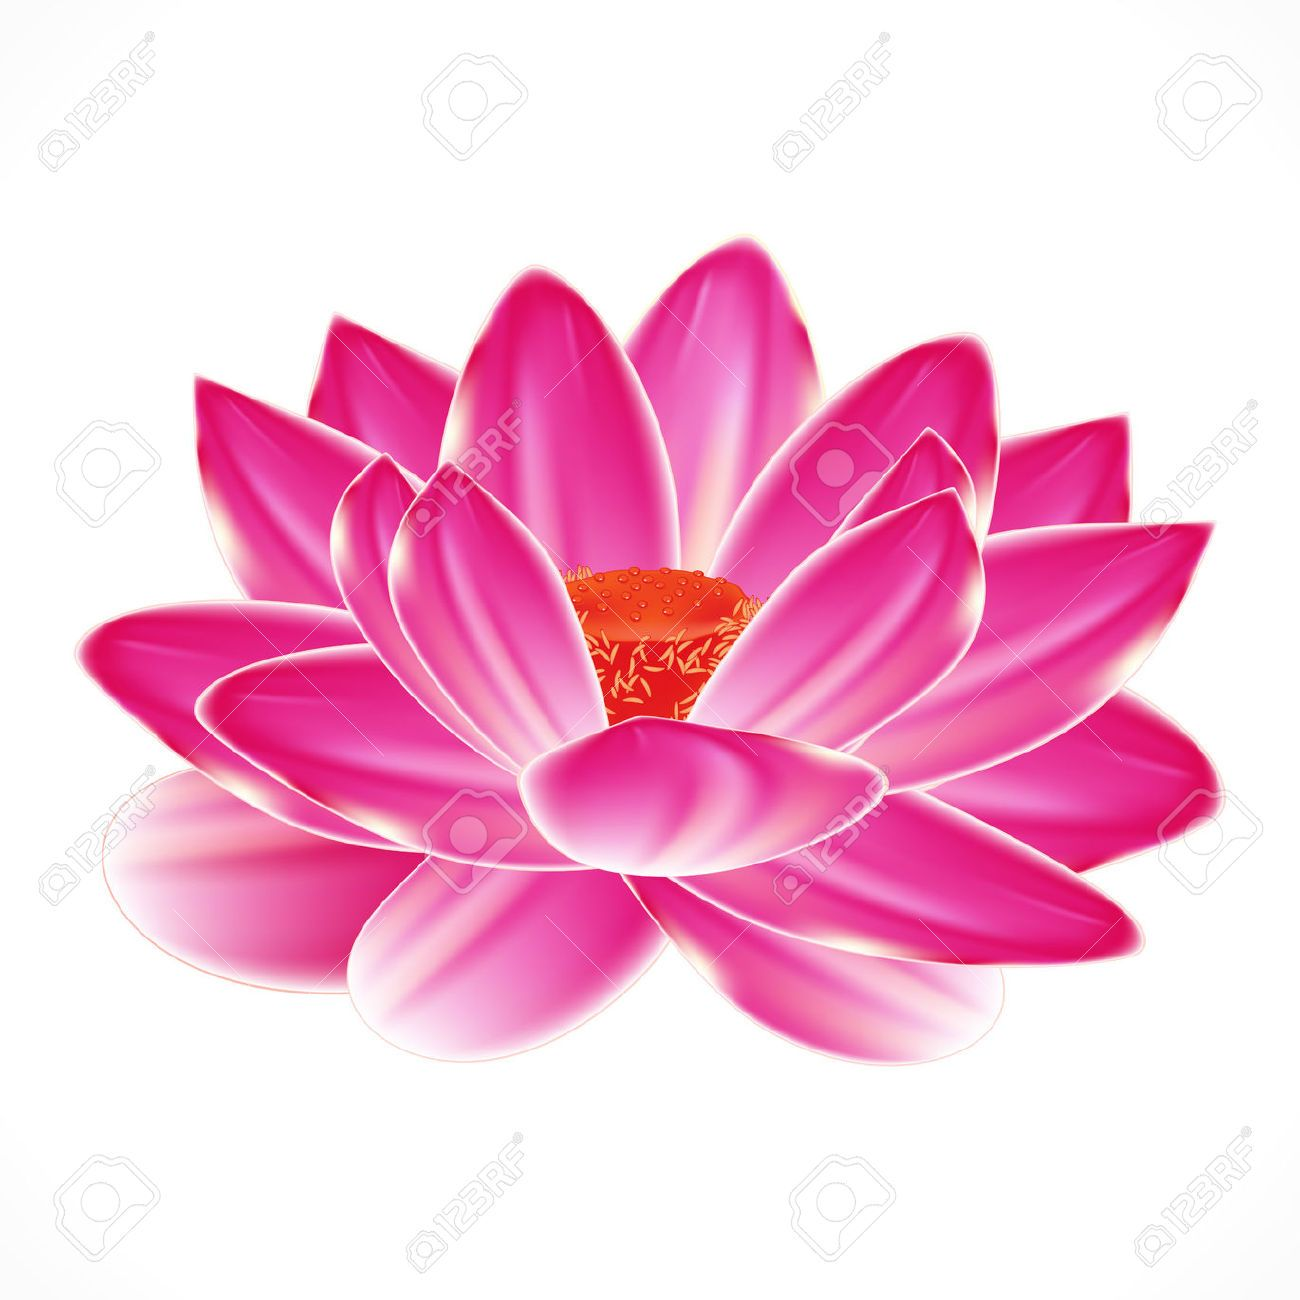 Pink lily flower transparent image the cliparts - Water Lily Images Stock Pictures Royalty Free Water Lily Photos